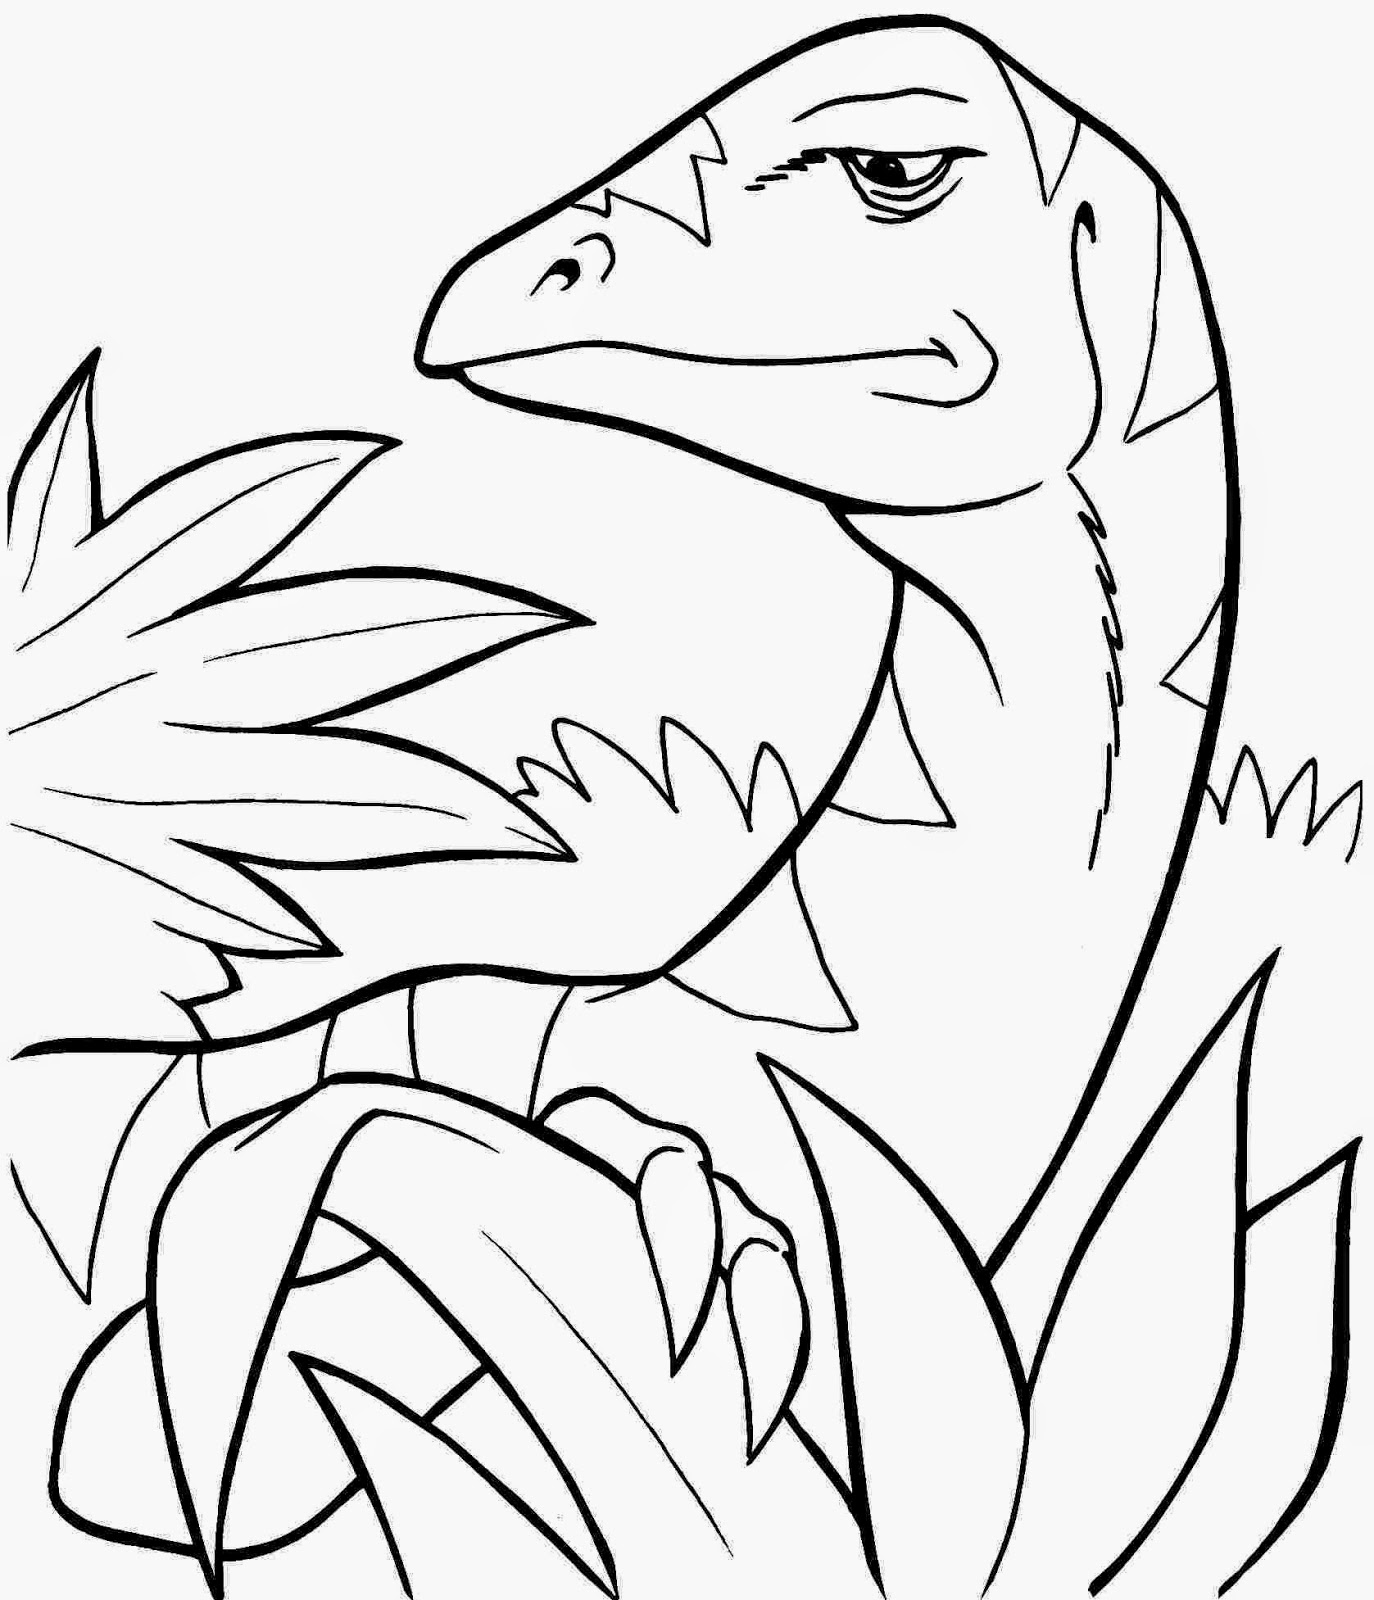 dinosaurs printable coloring pages coloring pages dinosaur free printable coloring pages printable dinosaurs pages coloring